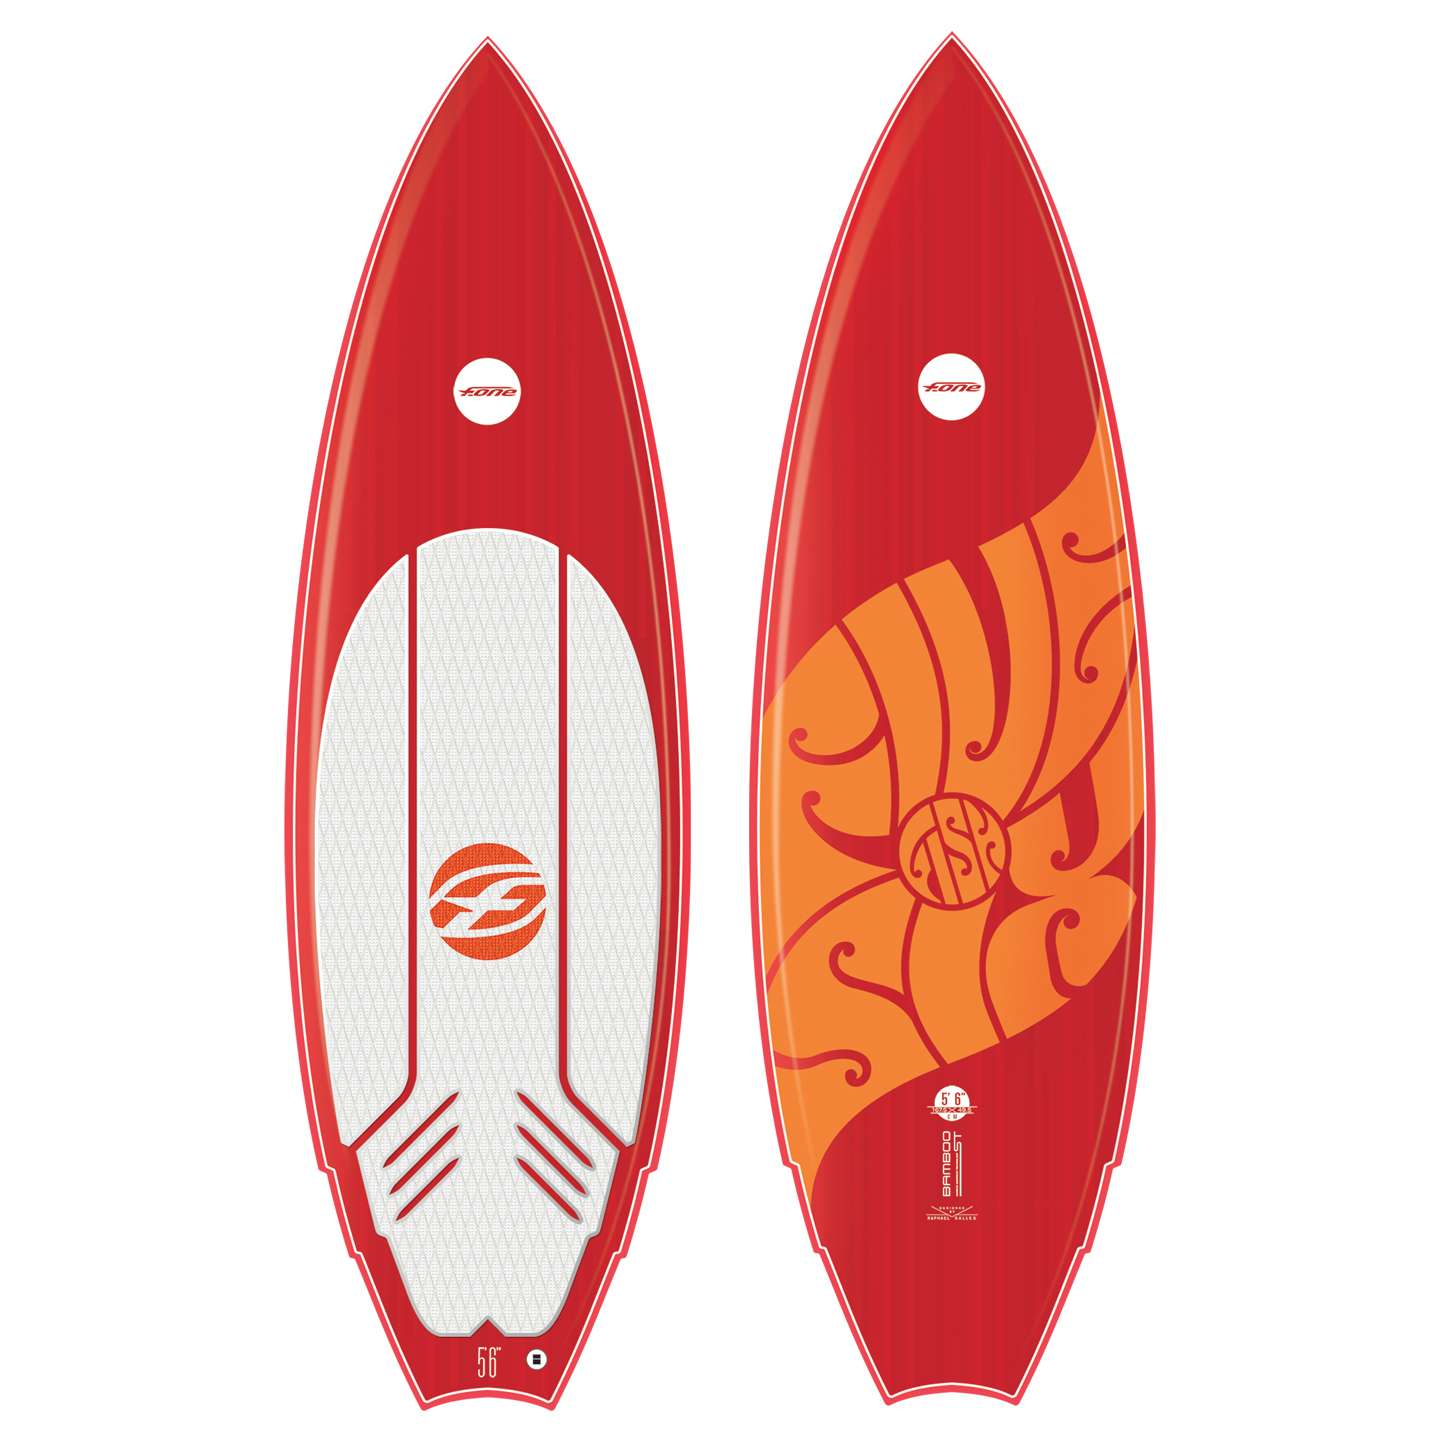 f one fish 2016 kite surfboard king of